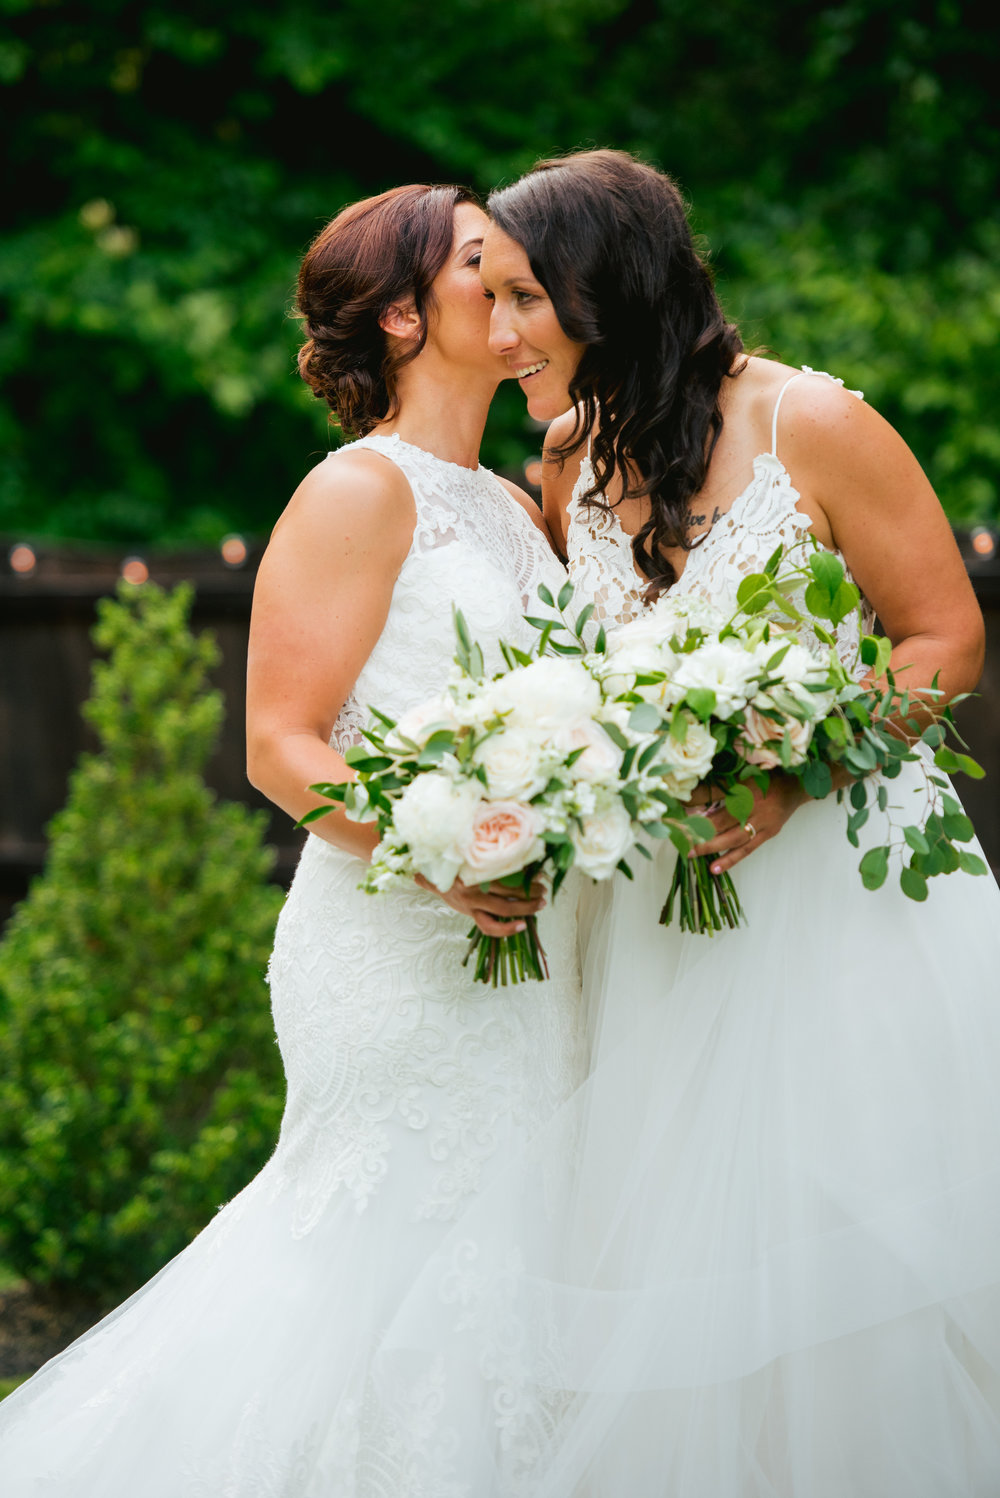 NJ Wedding, Bride Bouquet, White and Green, Jessica Hendrix Photography